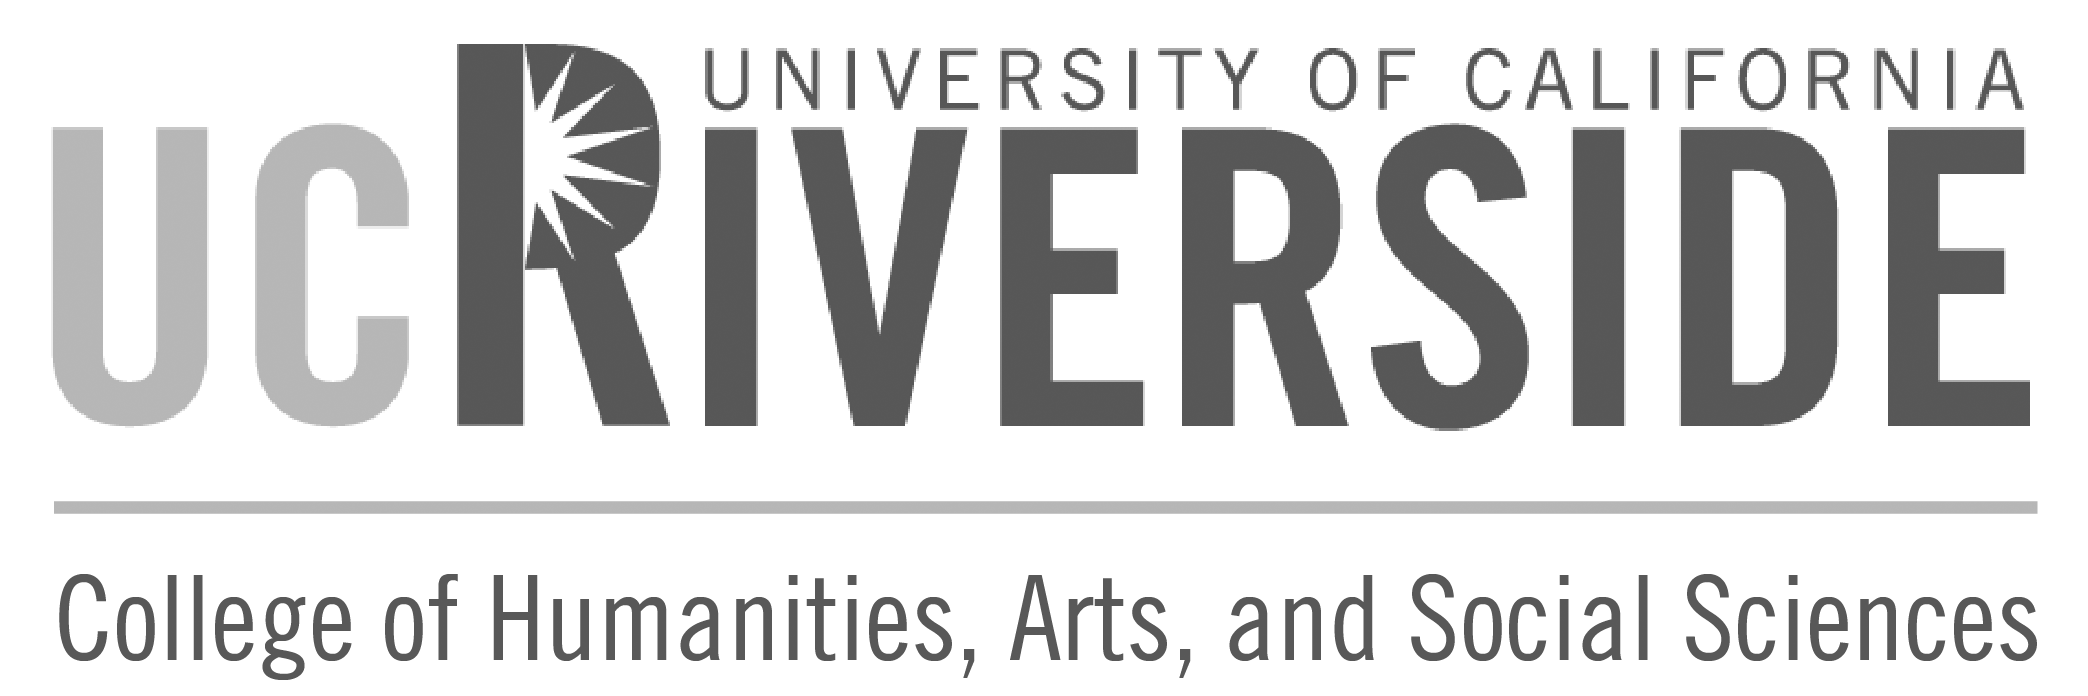 5S_UCRiverside_Logo-01_Grayscale.png